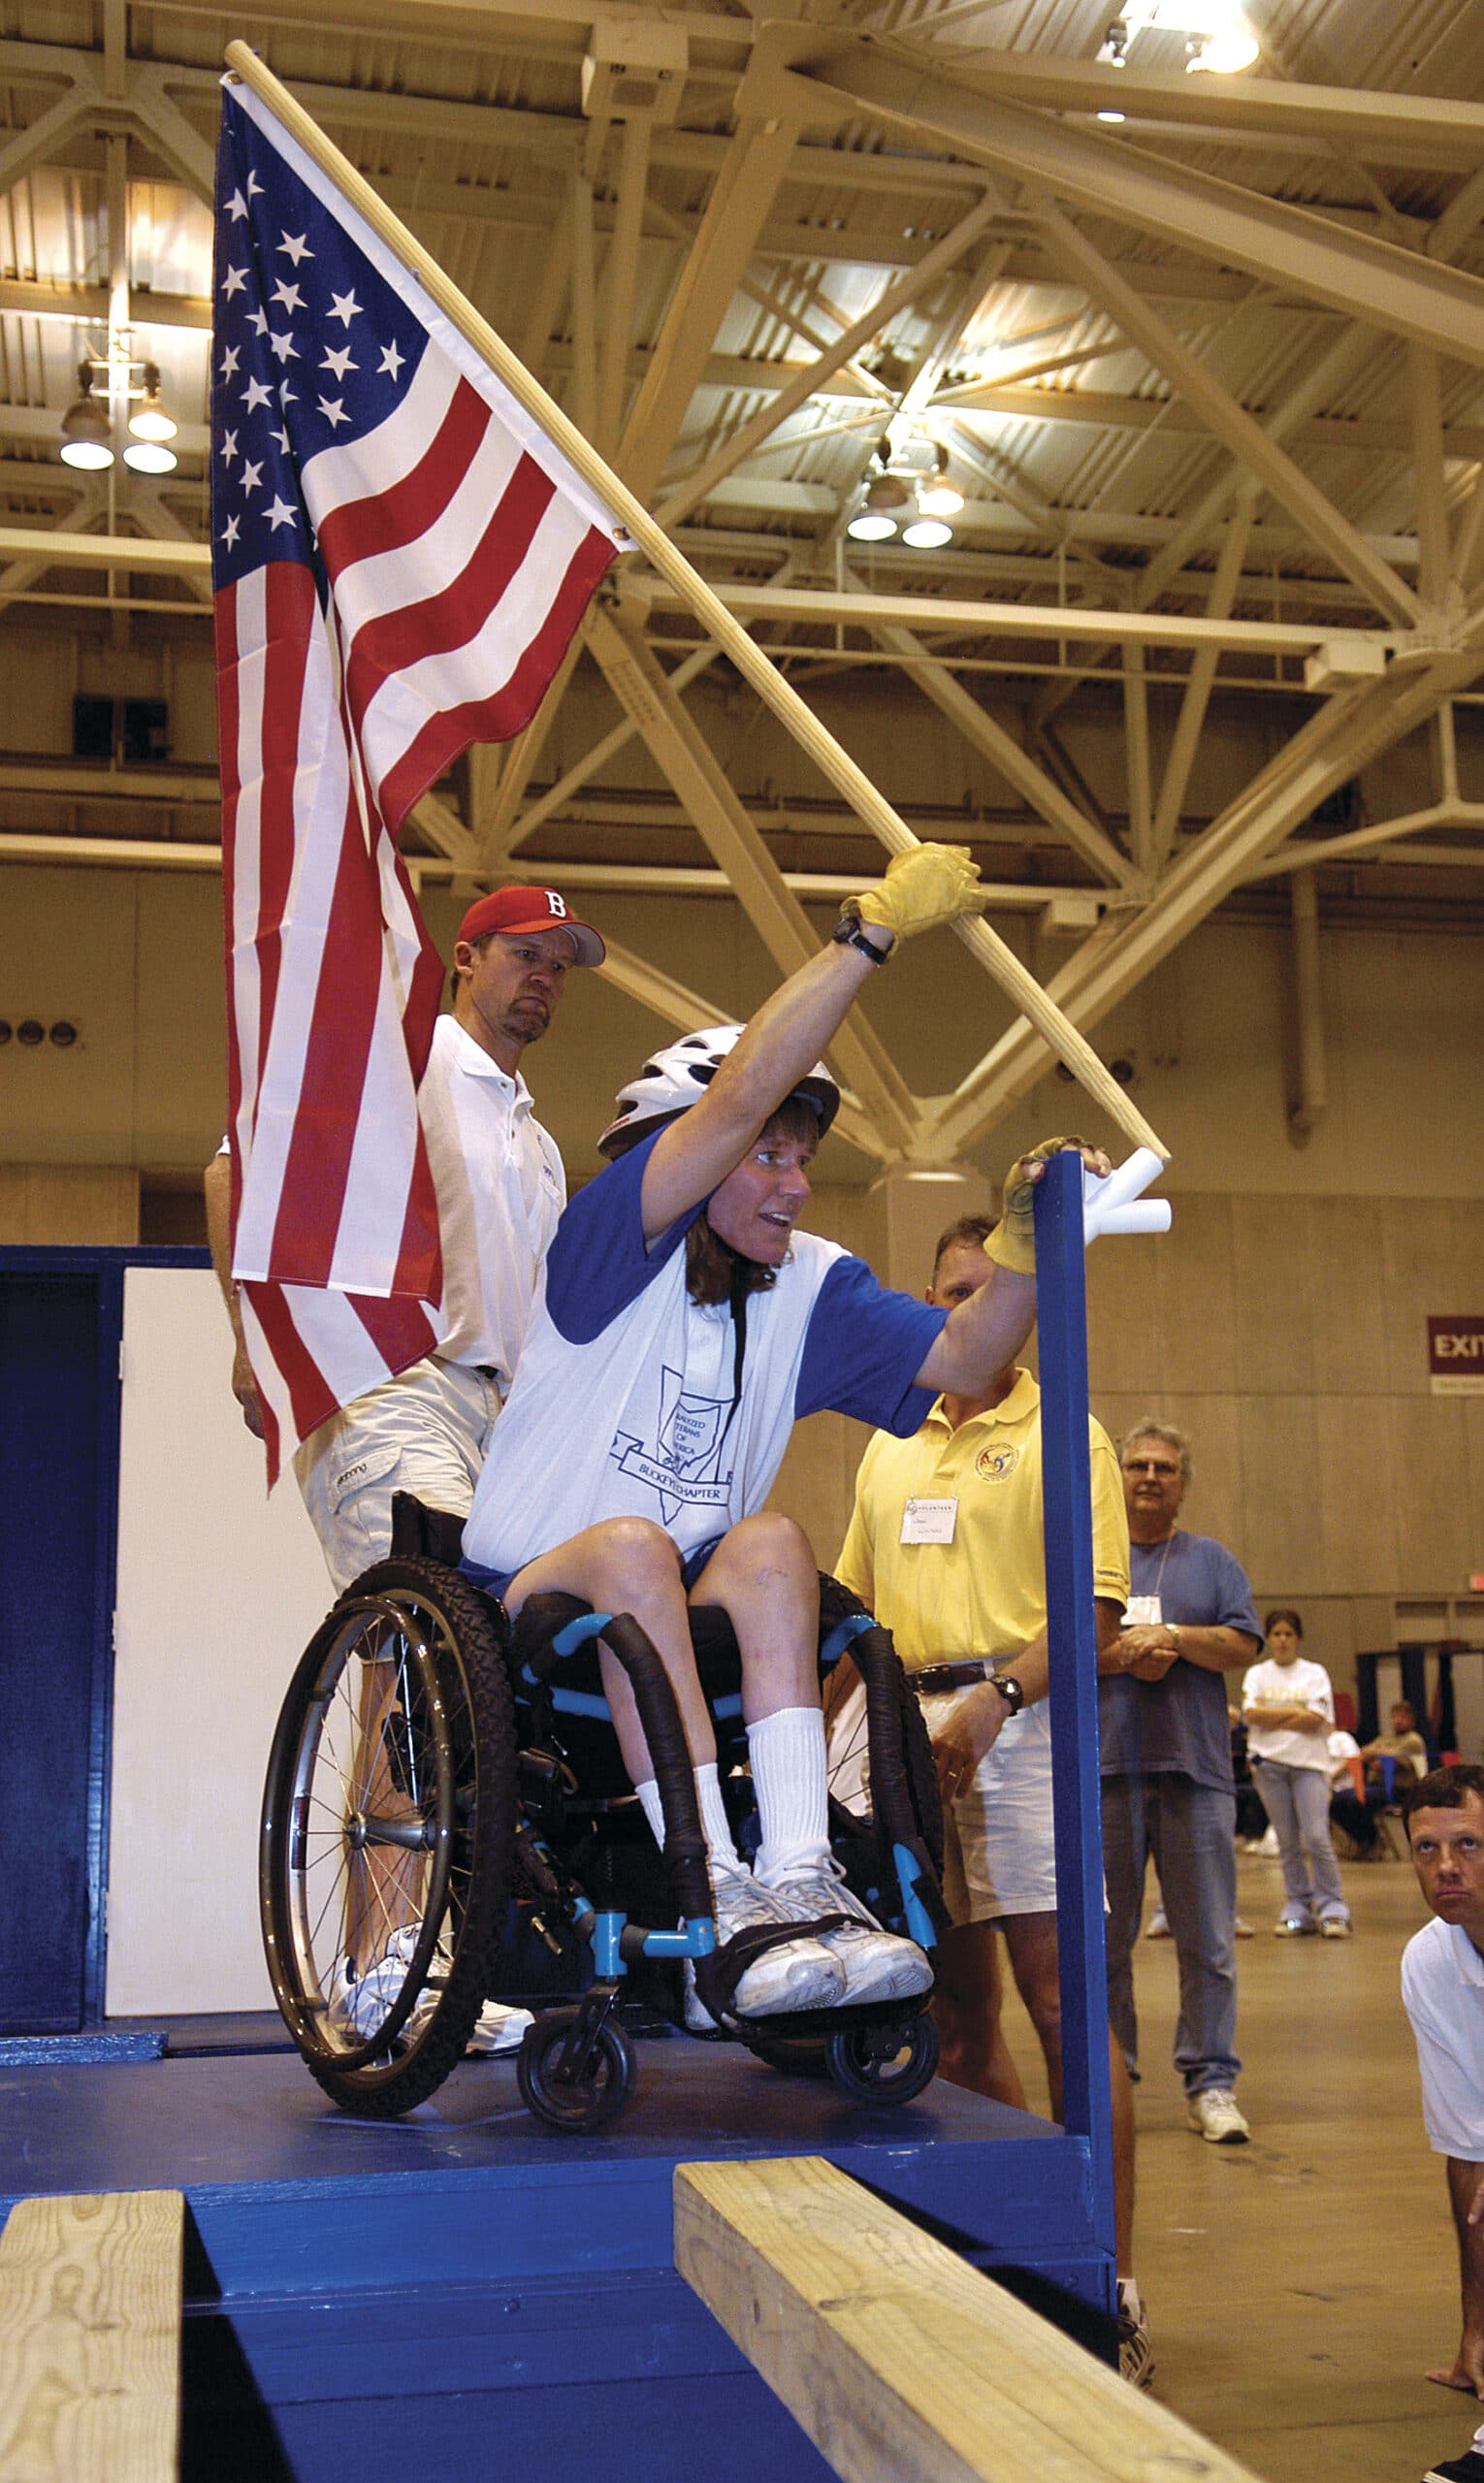 """Holly Koester, OH, a guest competitor in the """"Super G"""" places the American Flag in the holder near the finish line. 4th National Veterans Wheelchair Games, St. Louis. Missouri - June 15-19, 2004. PVA/ Sports"""